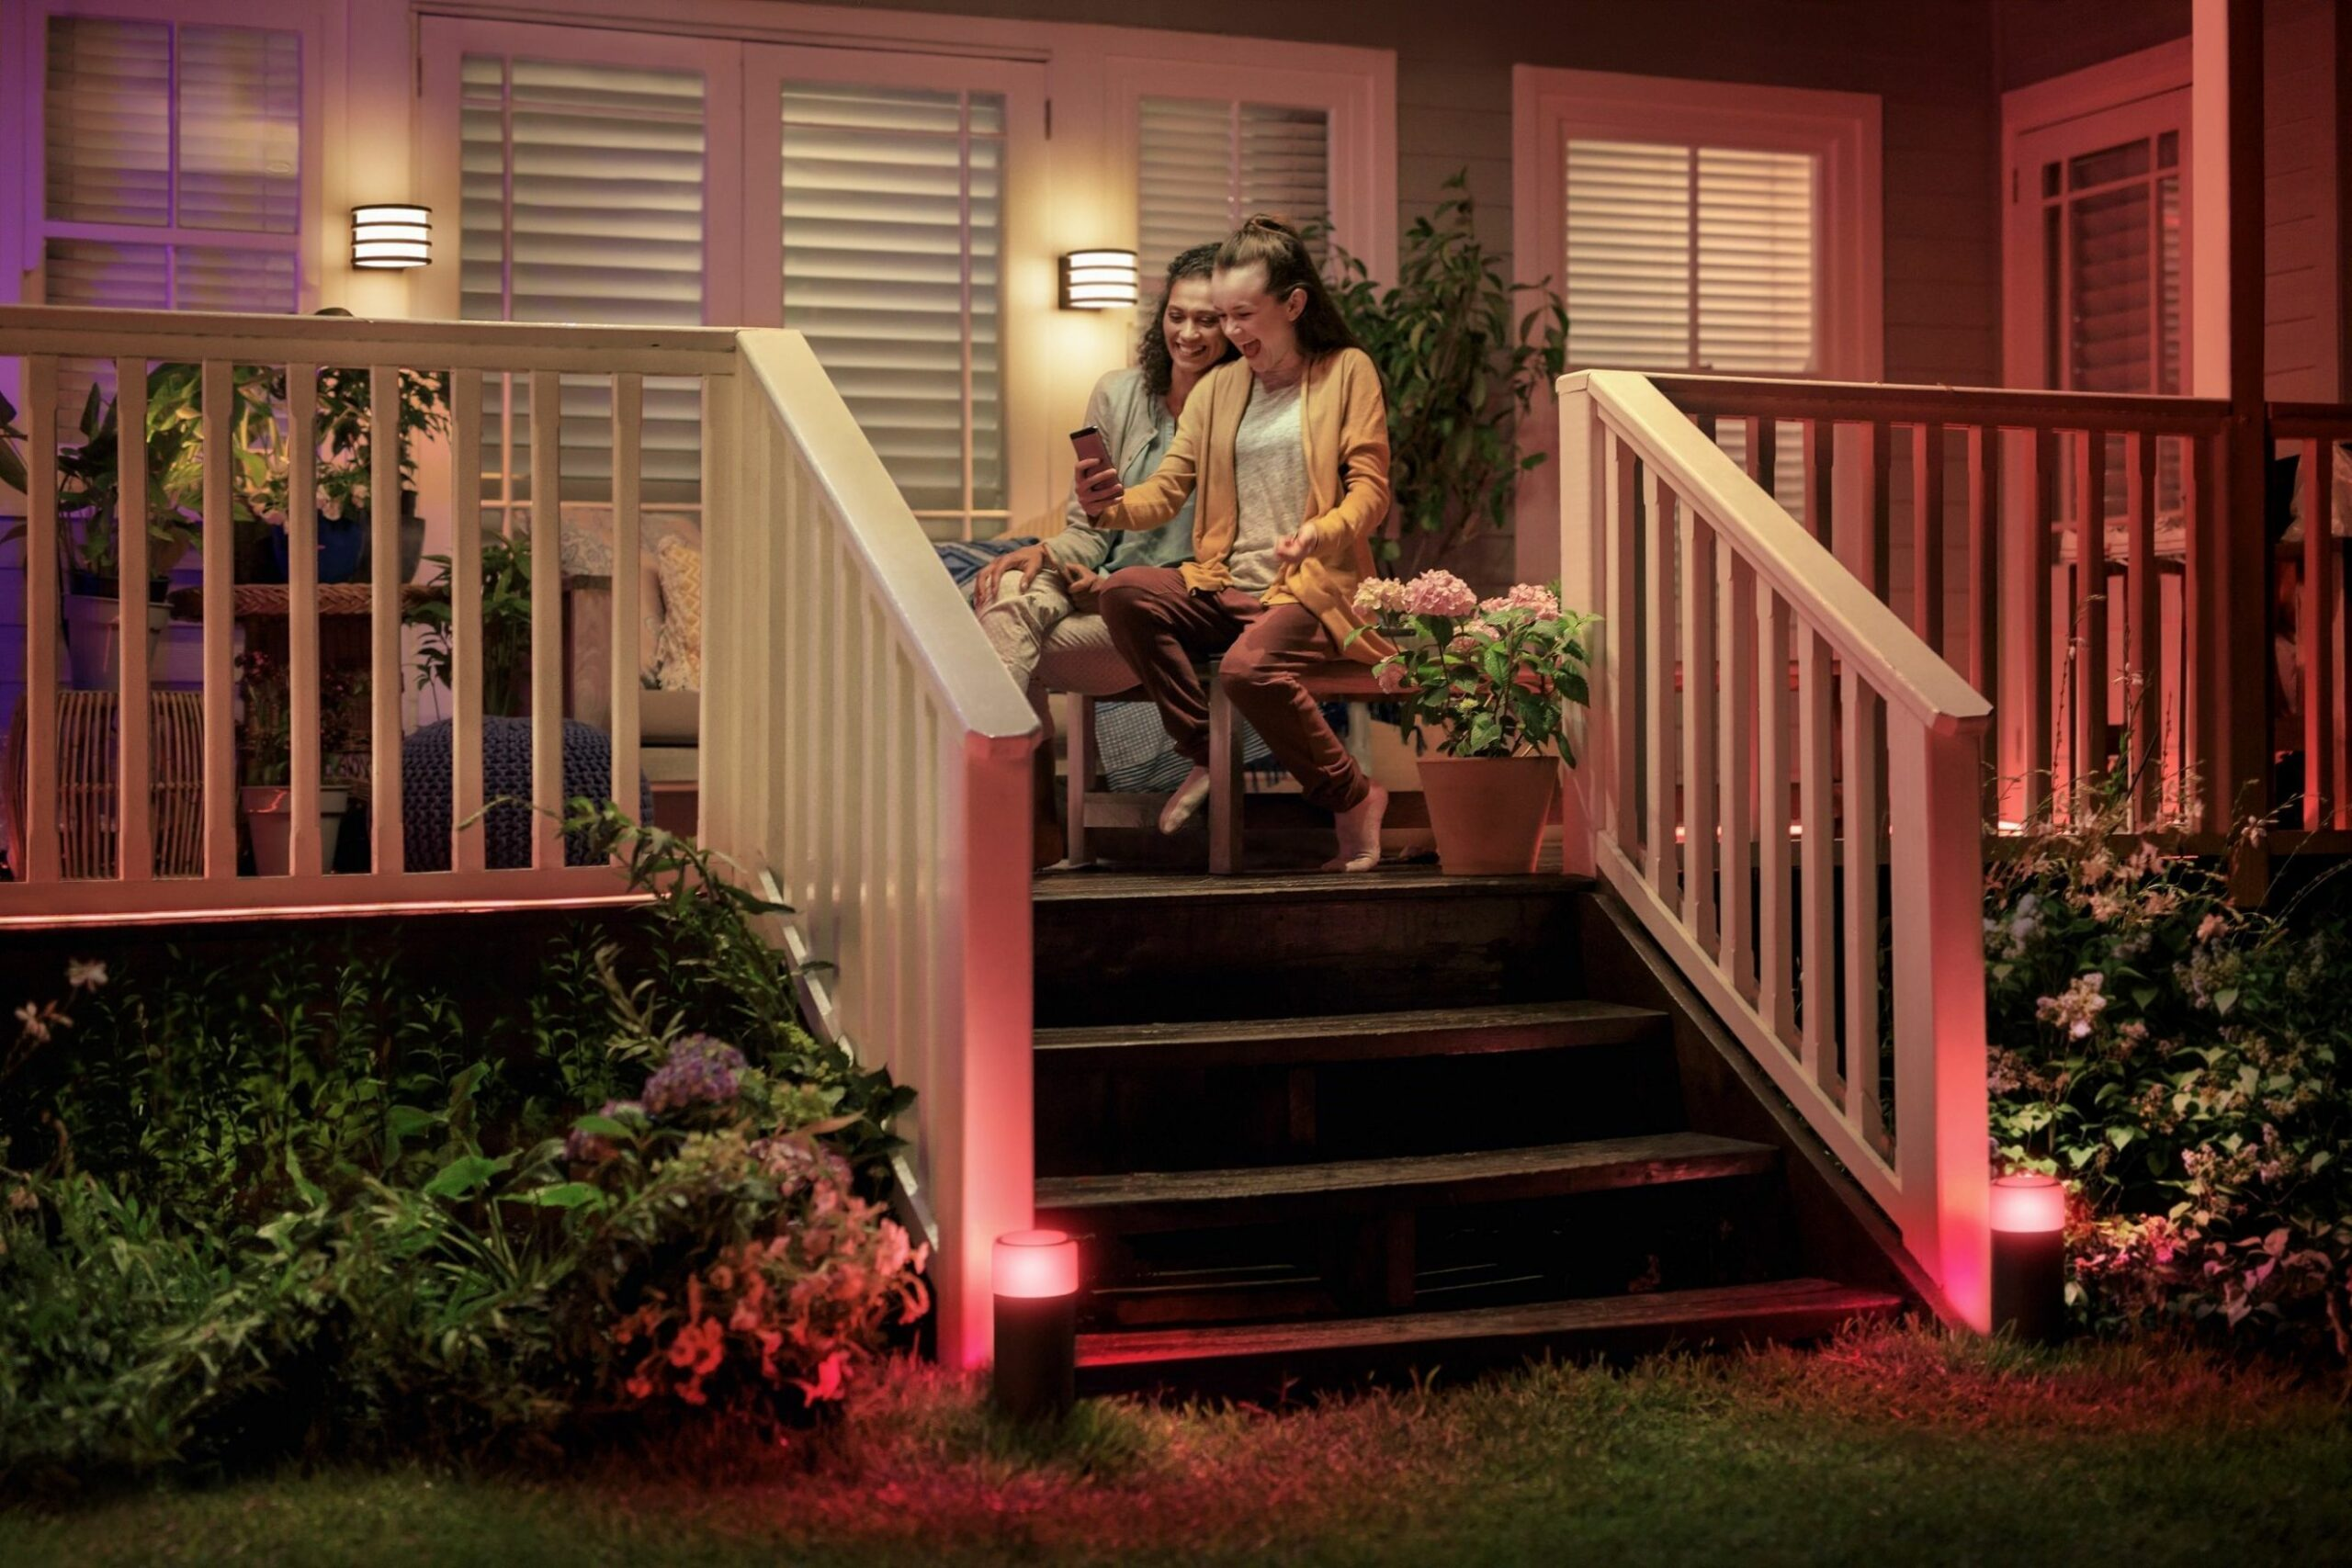 11 porch lighting ideas to make your house pop | Philips Hue - front porch lighting ideas